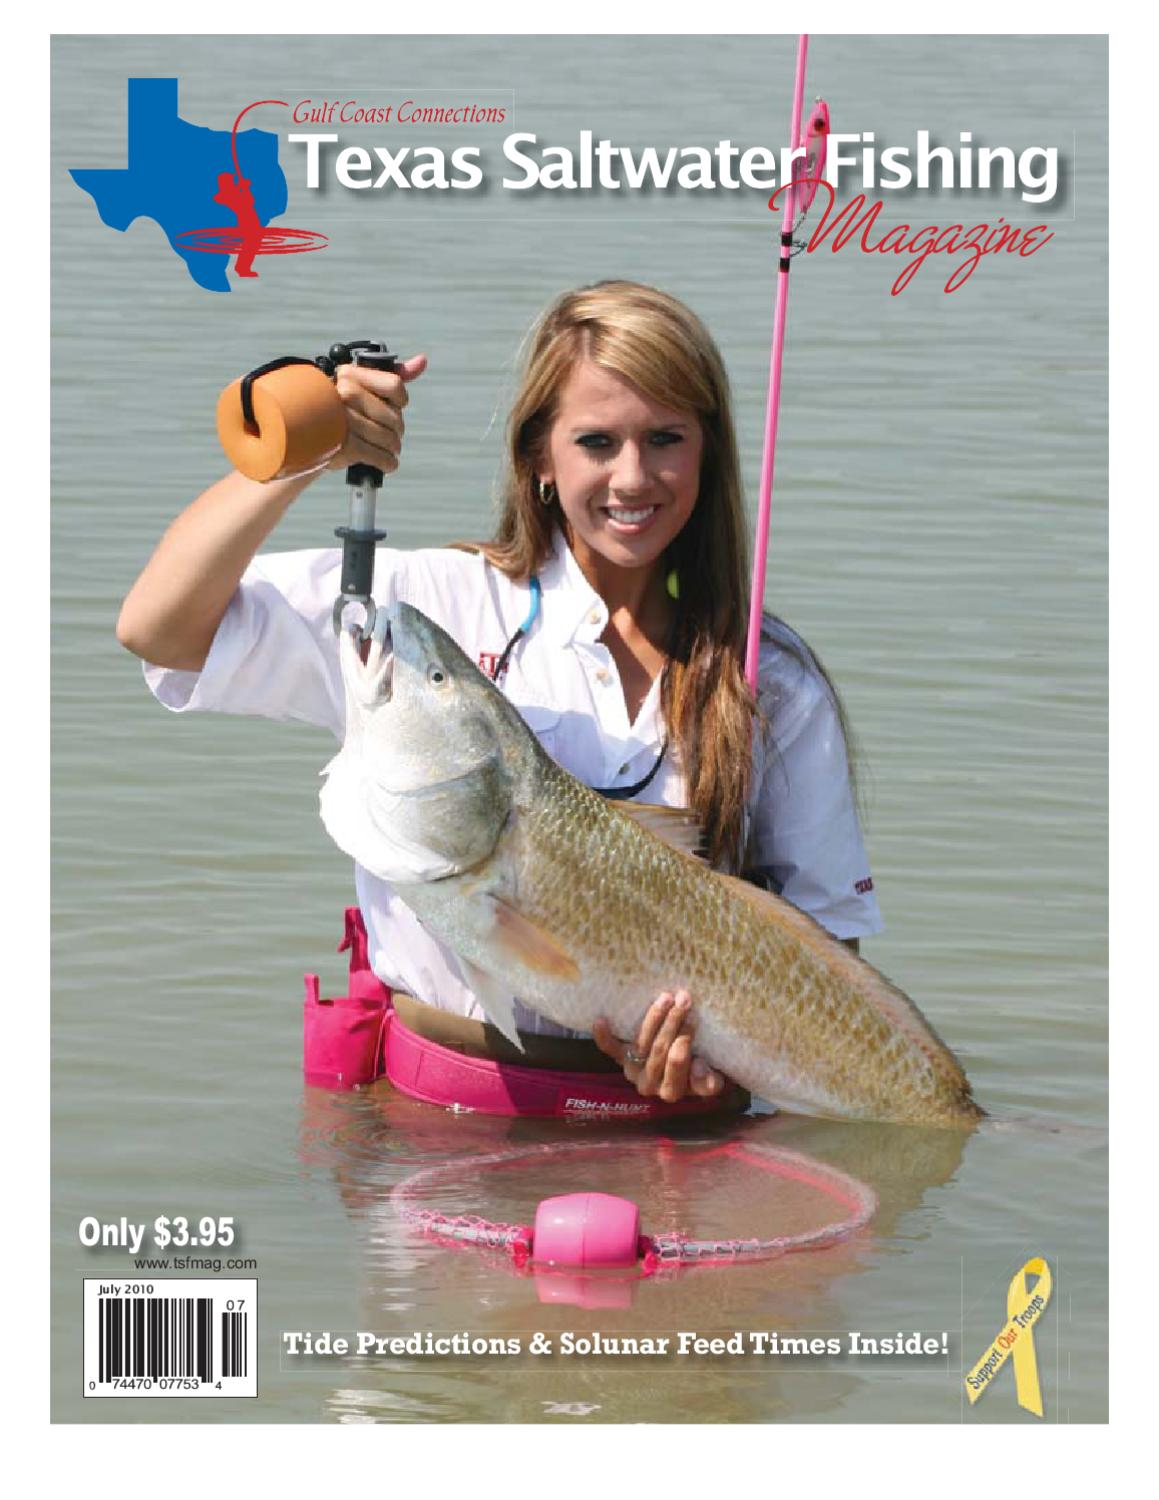 July 2010 by texas salwater fishing magazine issuu for Texas saltwater fishing magazine